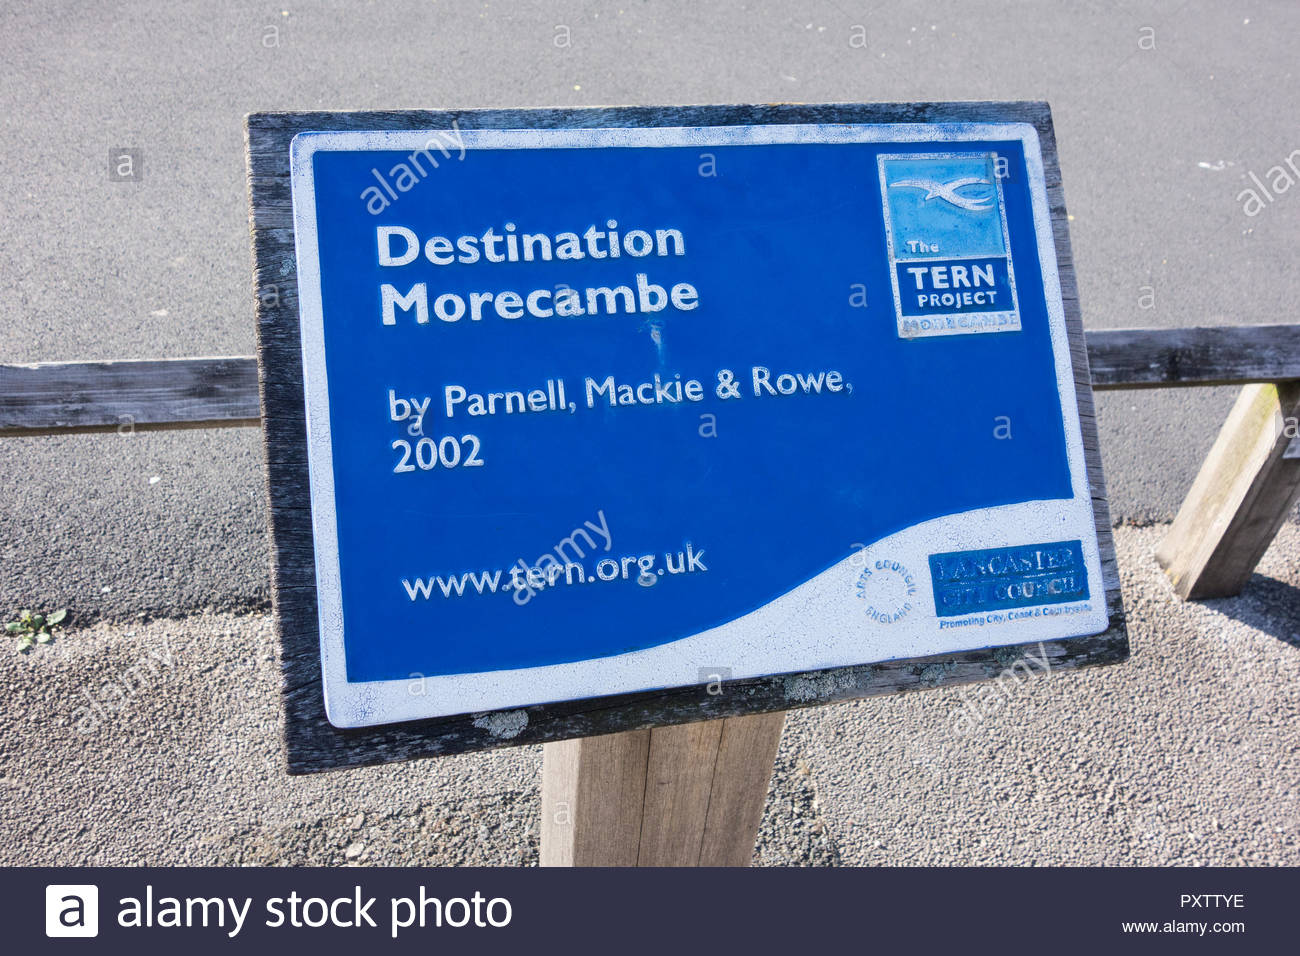 A plaque for Destination Morecambe, part of the Tern Project completed in Morecambe, Lancashire in 2002 - Stock Image